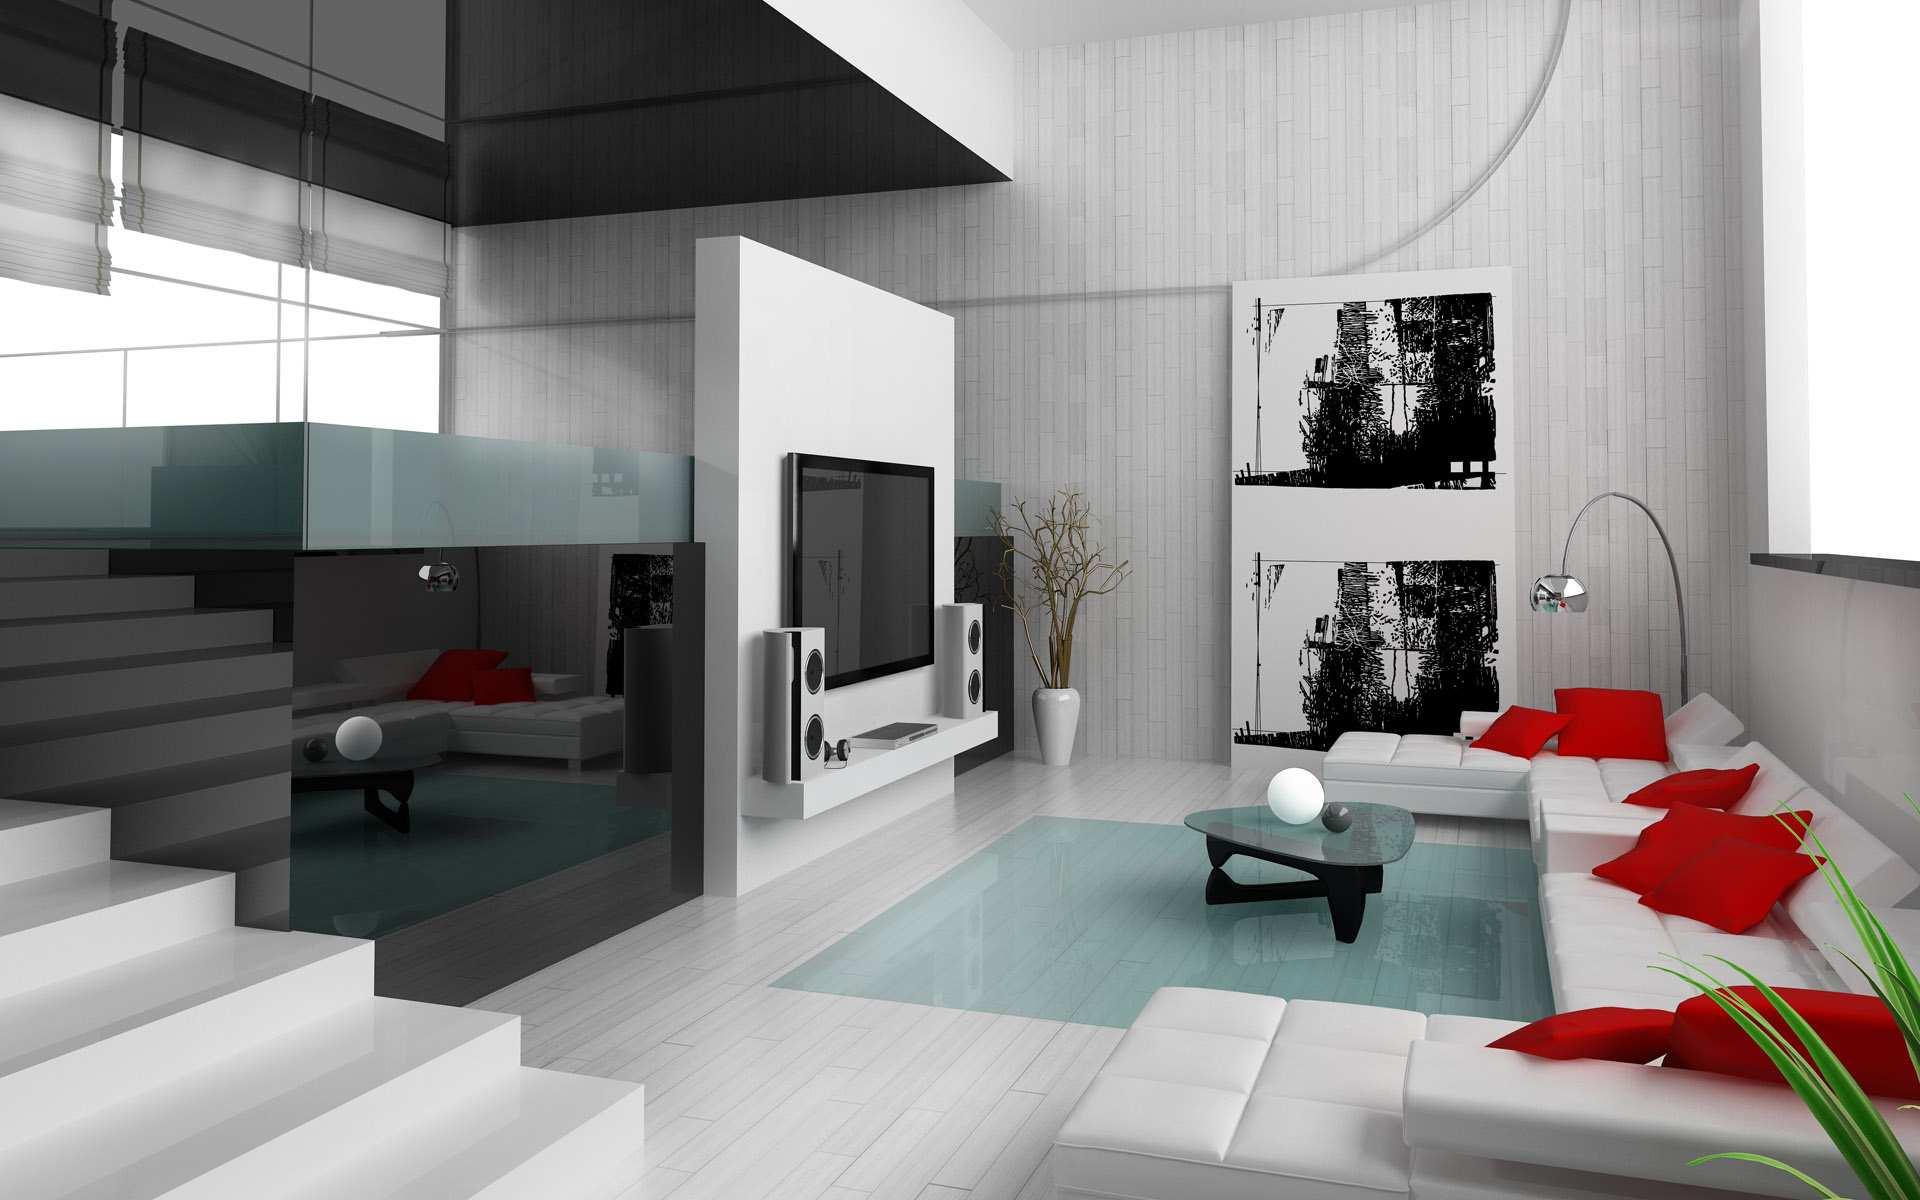 Modern Interior Design 10415 Hd Wallpapers in Architecture   Imagesci 1920x1200